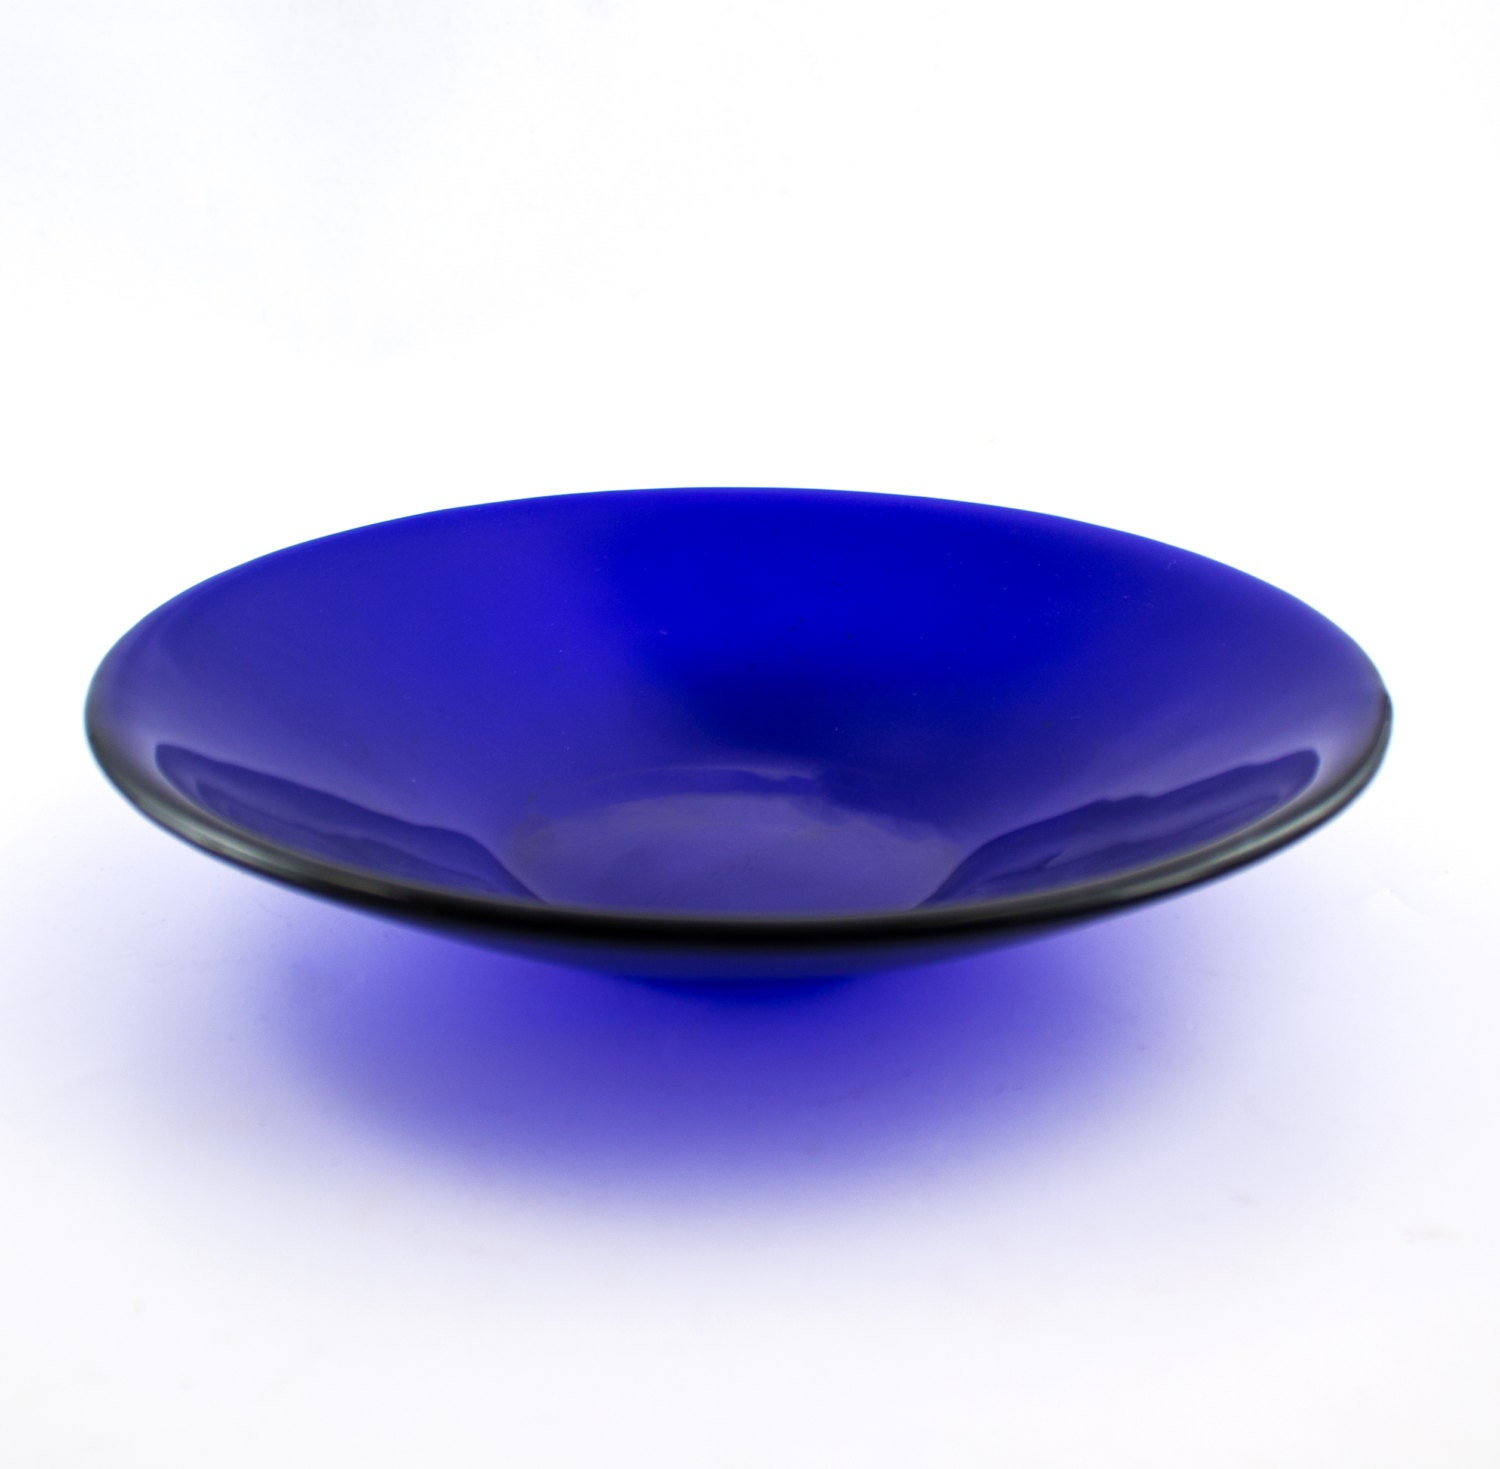 Cobalt Blue Glass Bowl Kitchen Decor Fused Glass Serving